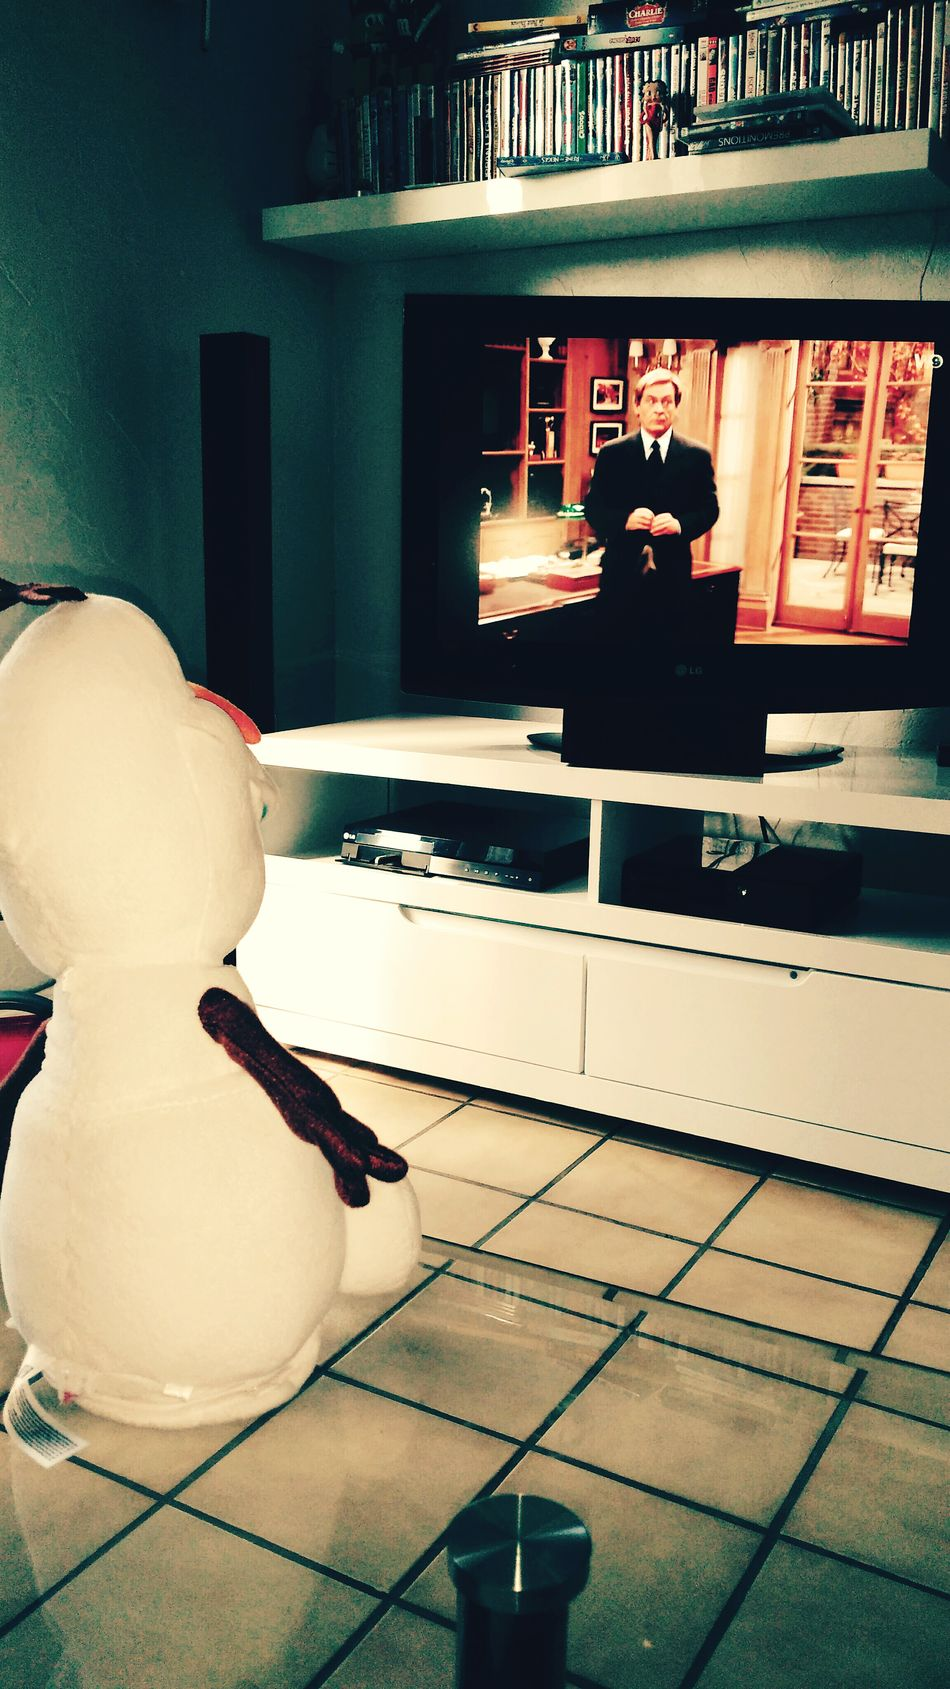 Olaf fond devant Niels Tv Television Fun Have Fun Delire OpenEdit Toy il faut garder son ame d enfant 😆 Watching Tv Happy